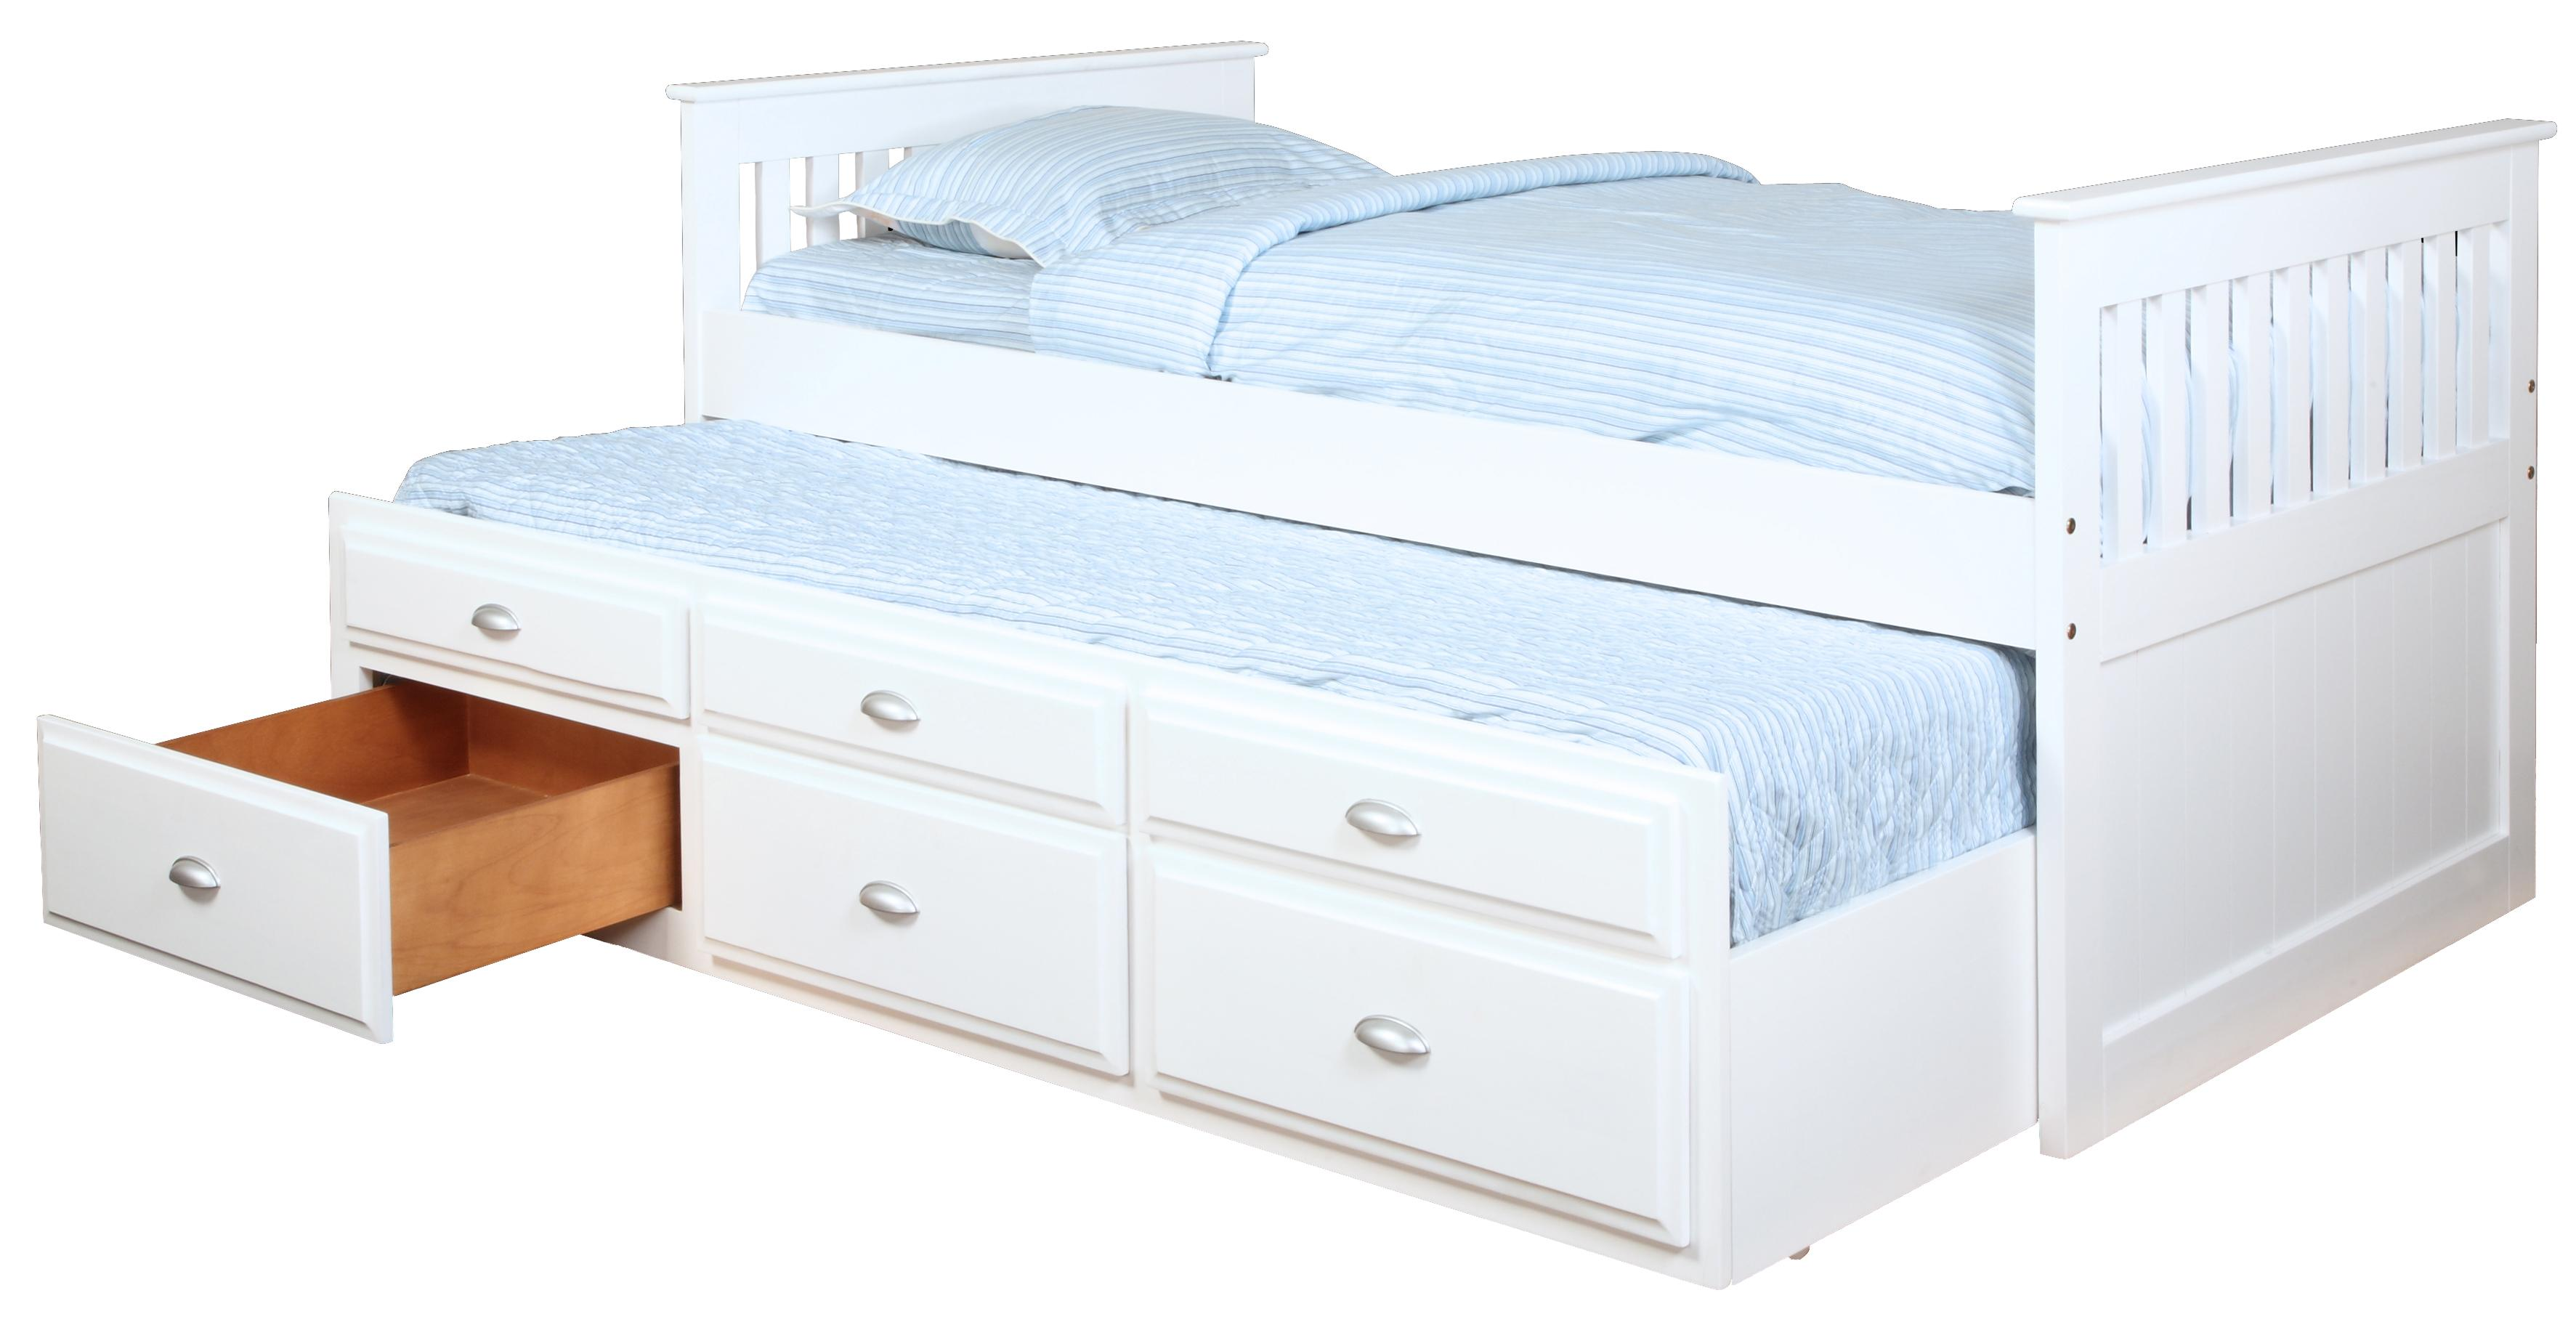 Bernards Captains Beds Captain's Bed with Trundle and Storage - Item Number: 3042V